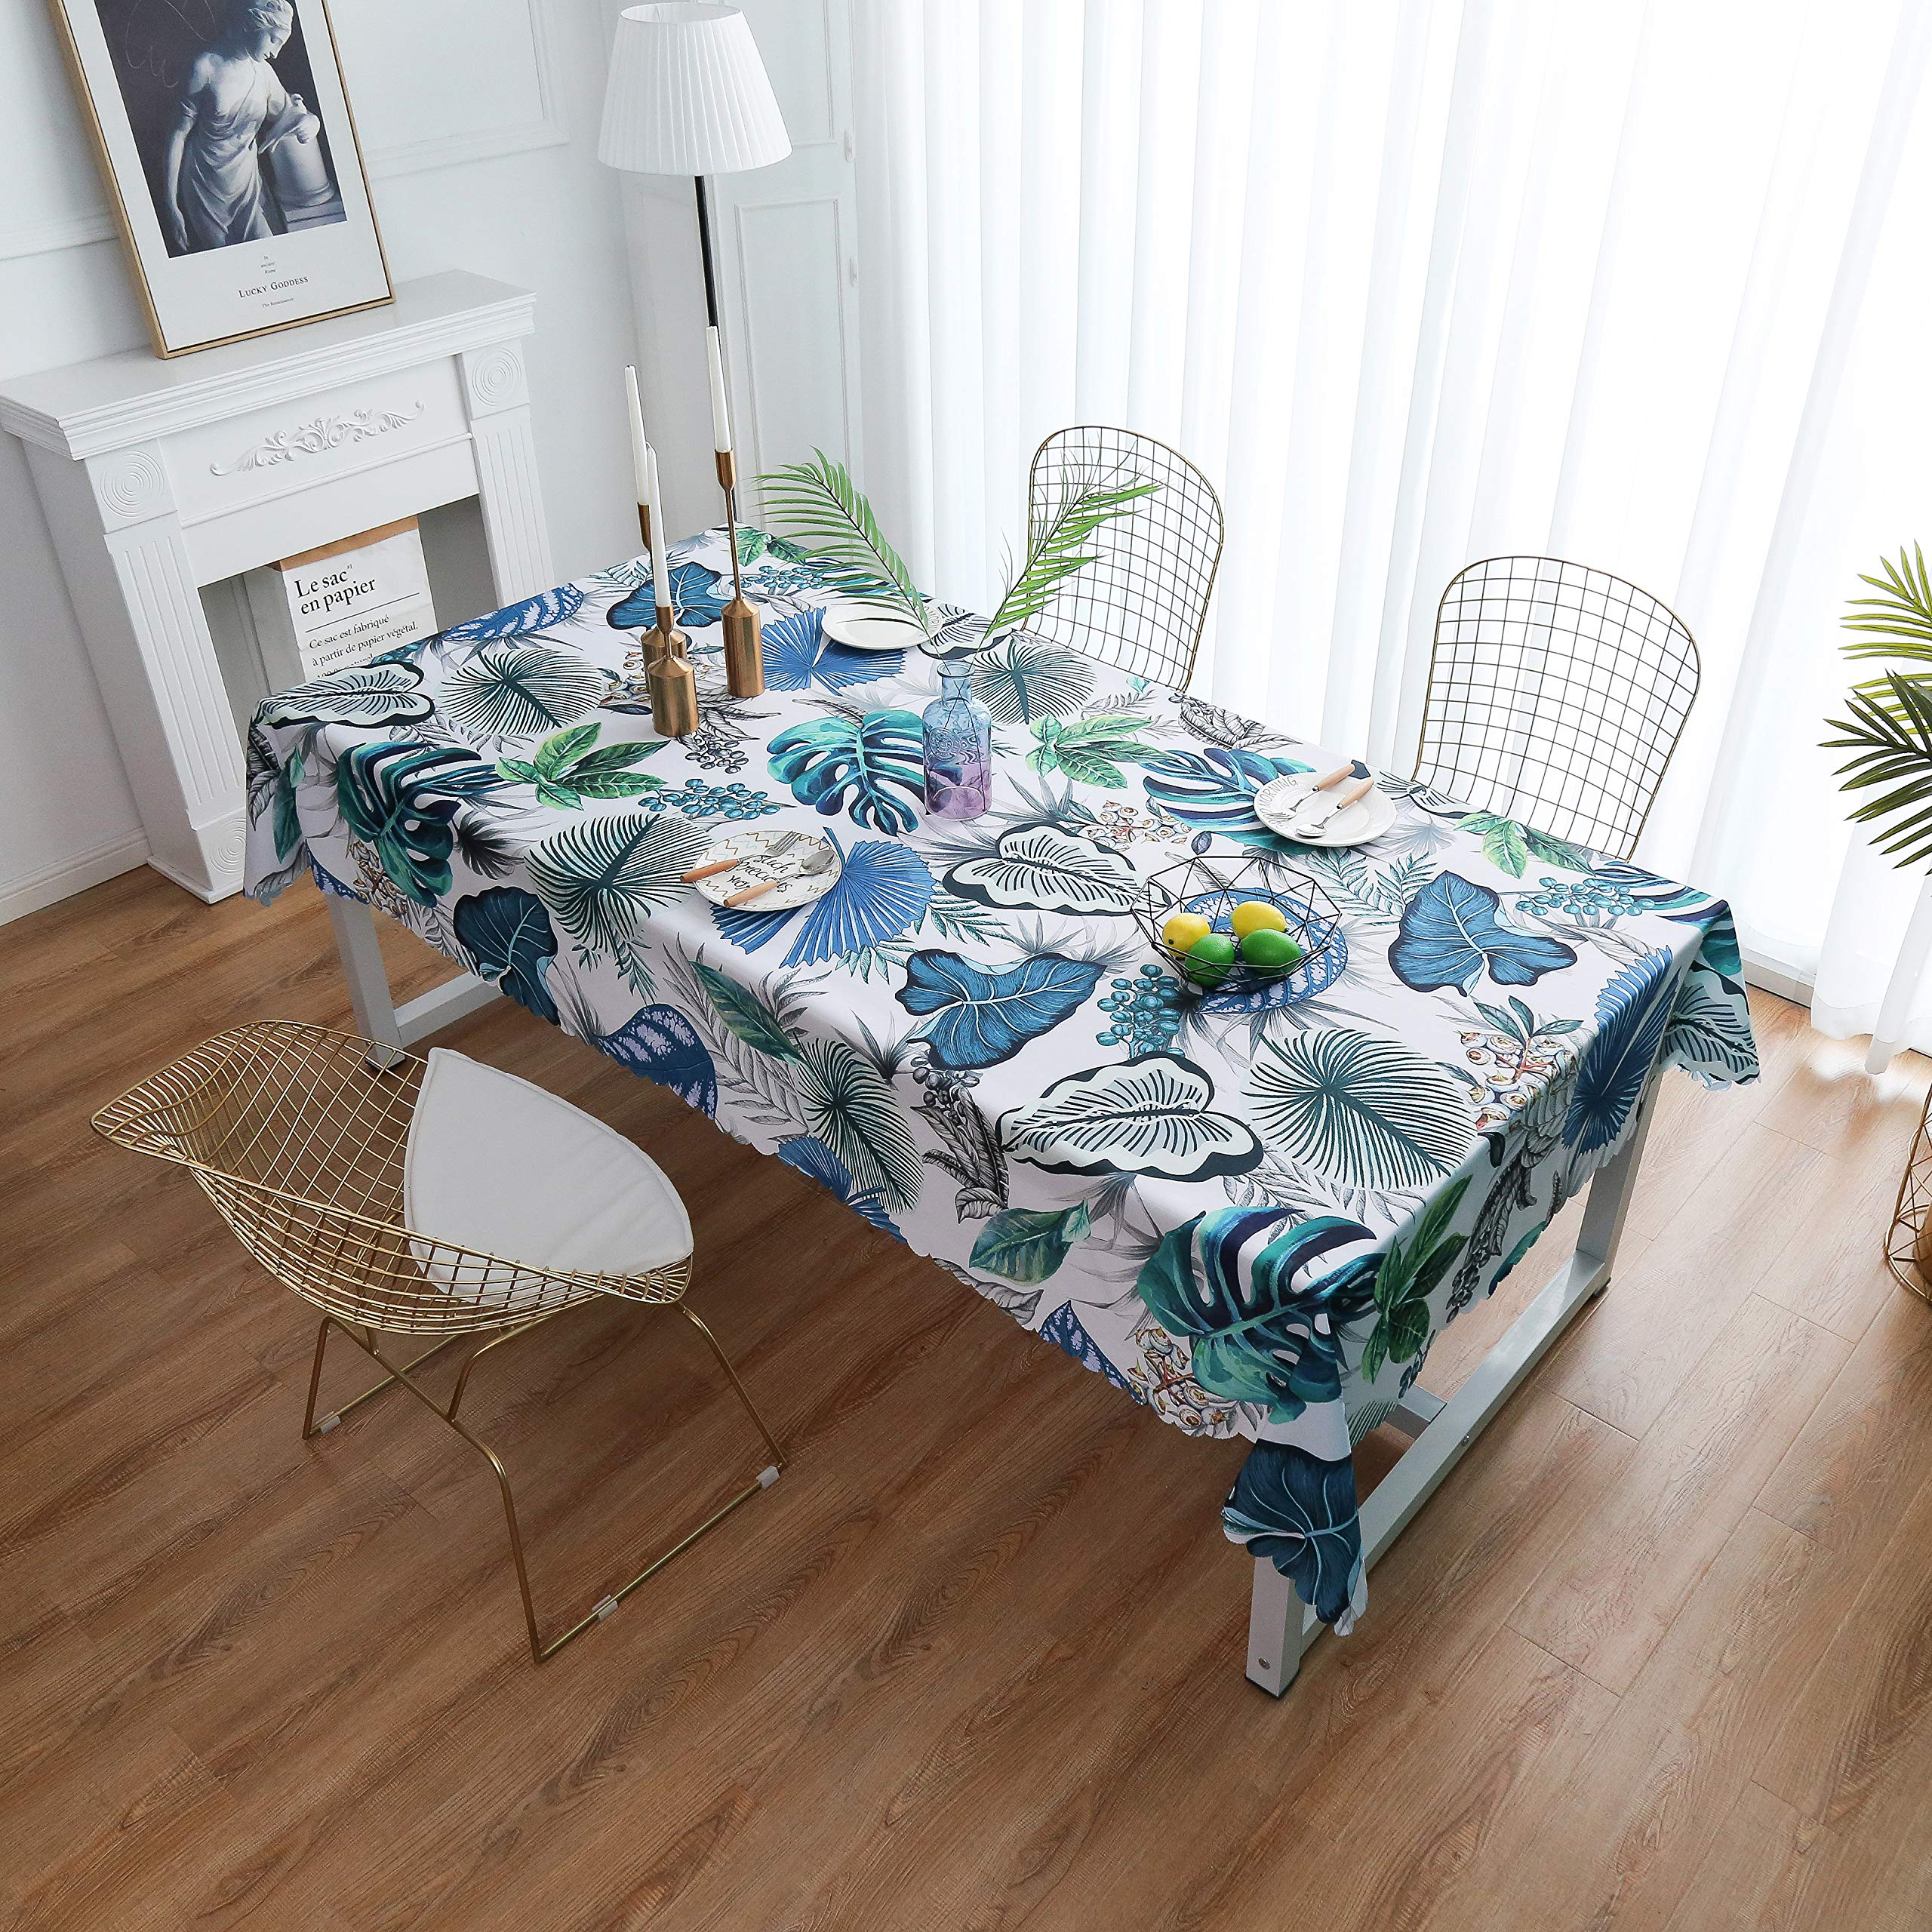 Ilivex Tablecloth Original Design Hand Drawing Art Print Table Cloth Water Proof Rectangle Table Cover Kitchen Dining Indoor Outdoor Buffet Tabletop Decoration 52 X72 Blue Tropical